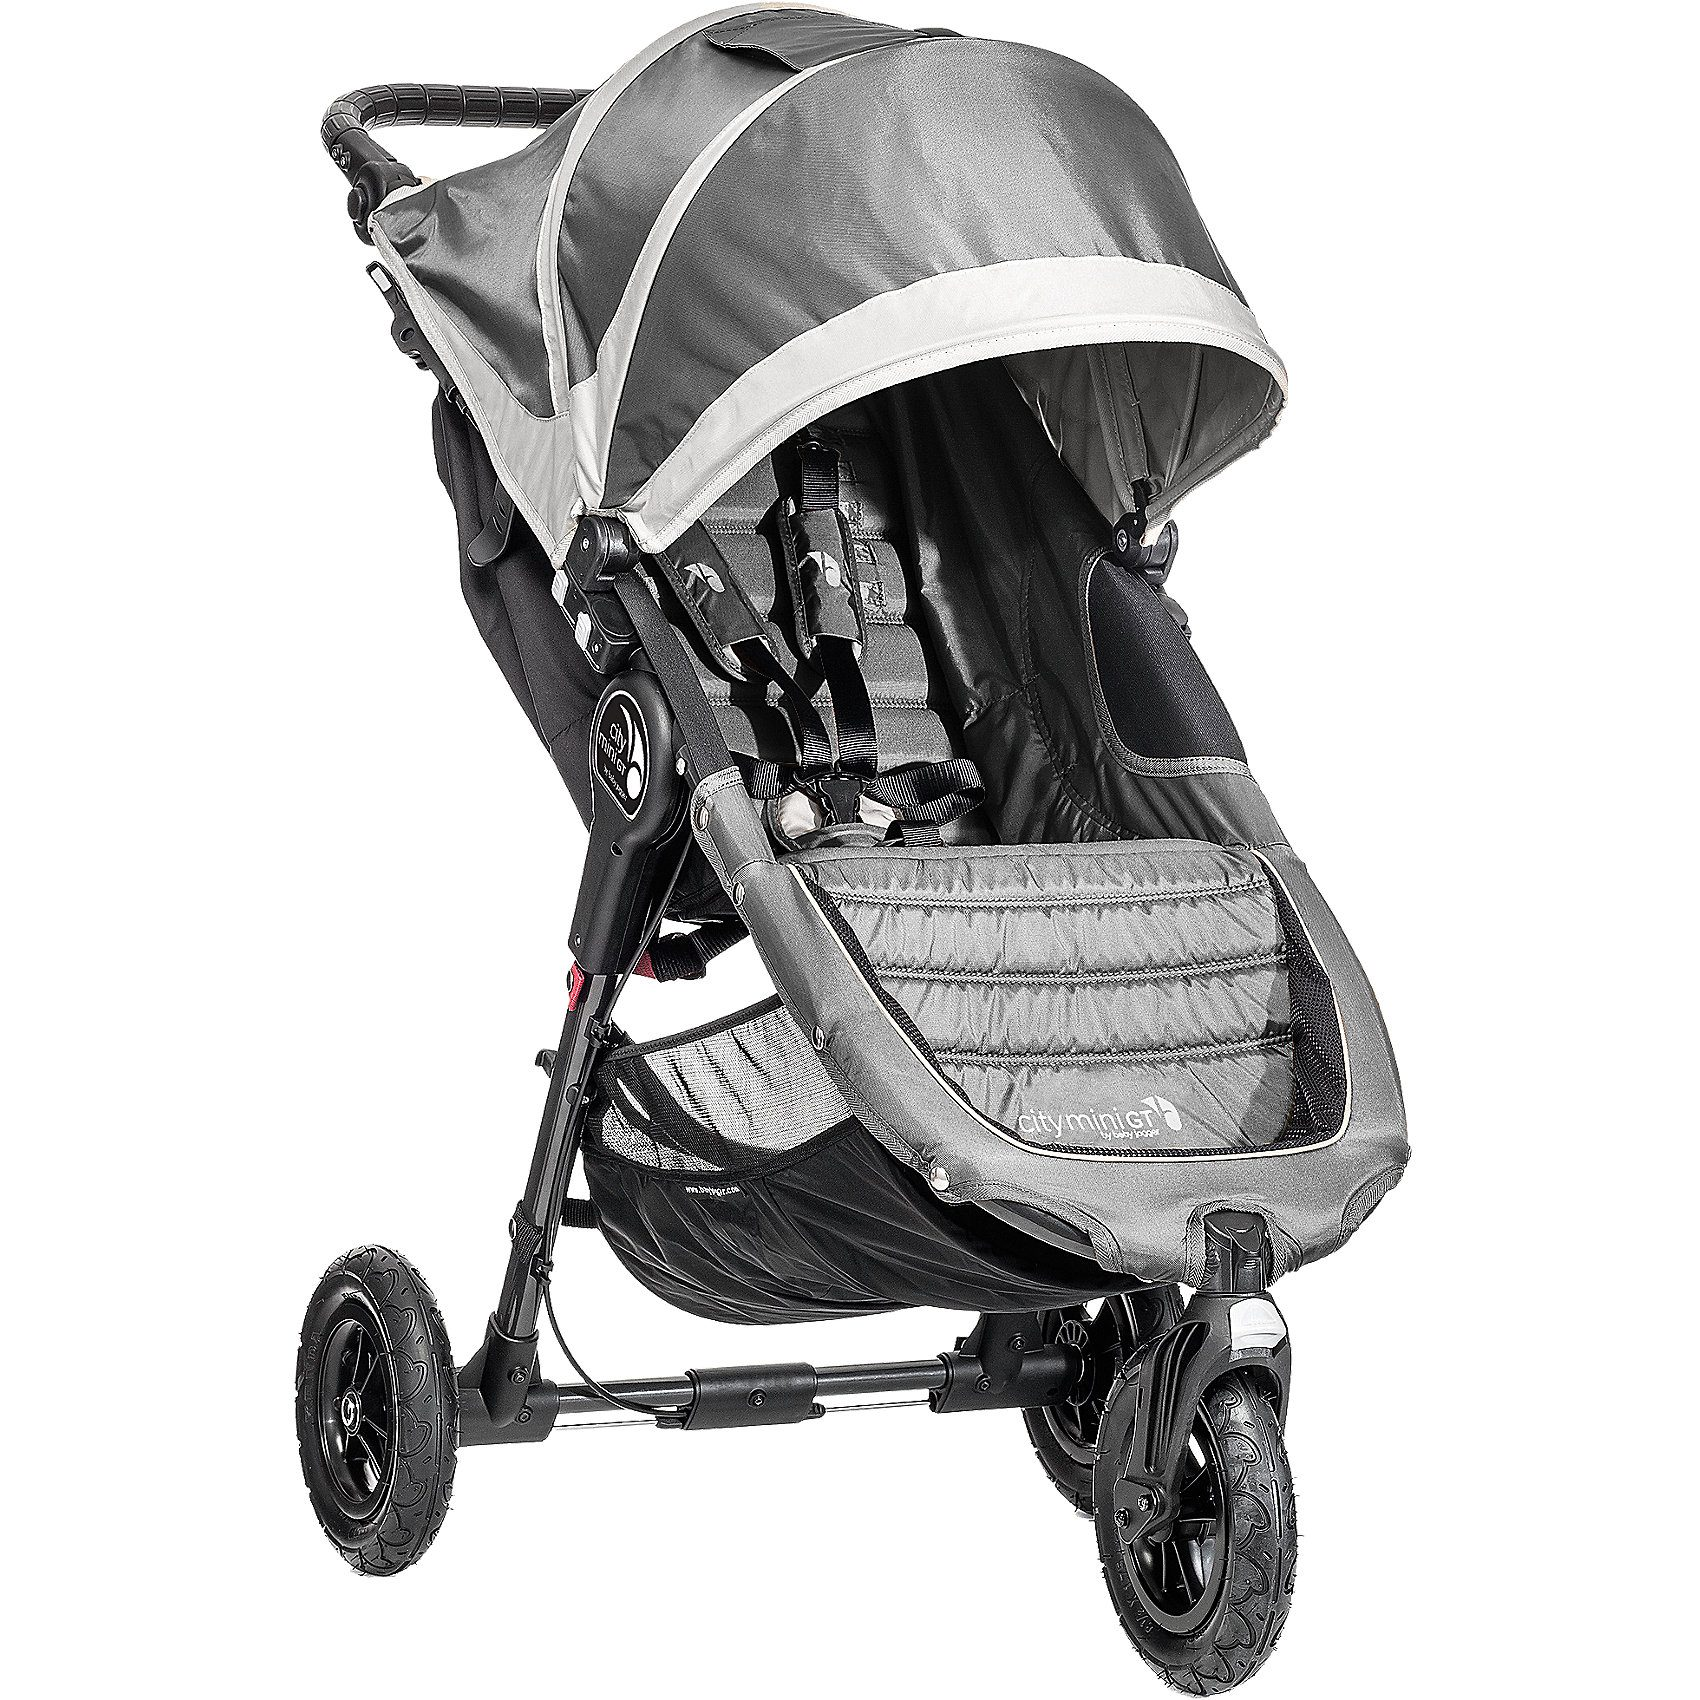 Baby Jogger Jogger City Mini GT, steel/ gray, 2016